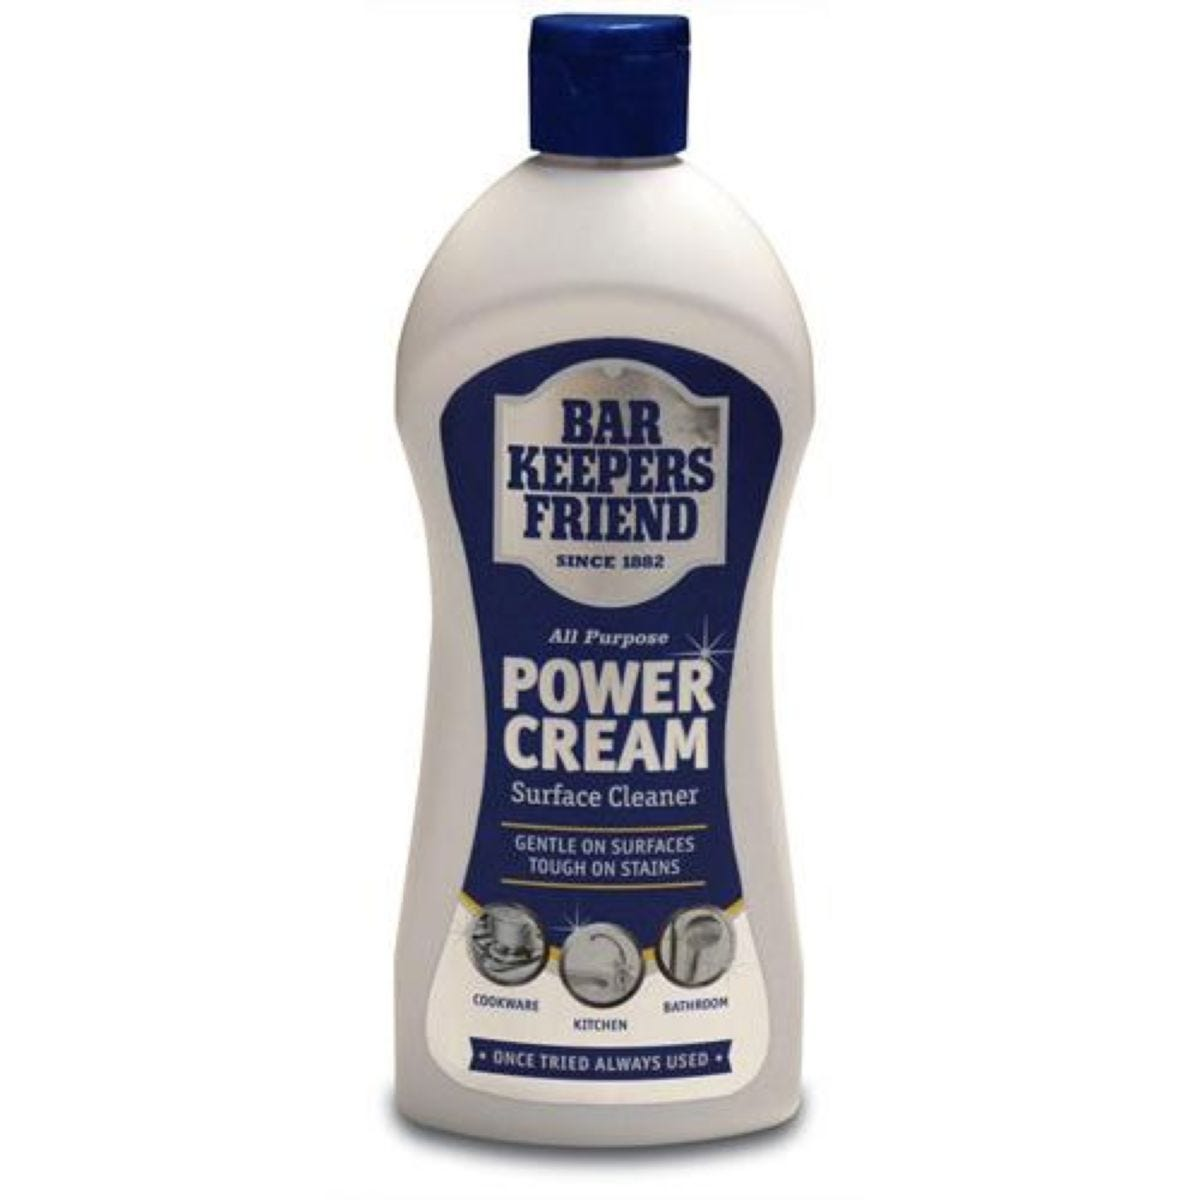 Bar Keeper's Friend Power Cream – 350ml